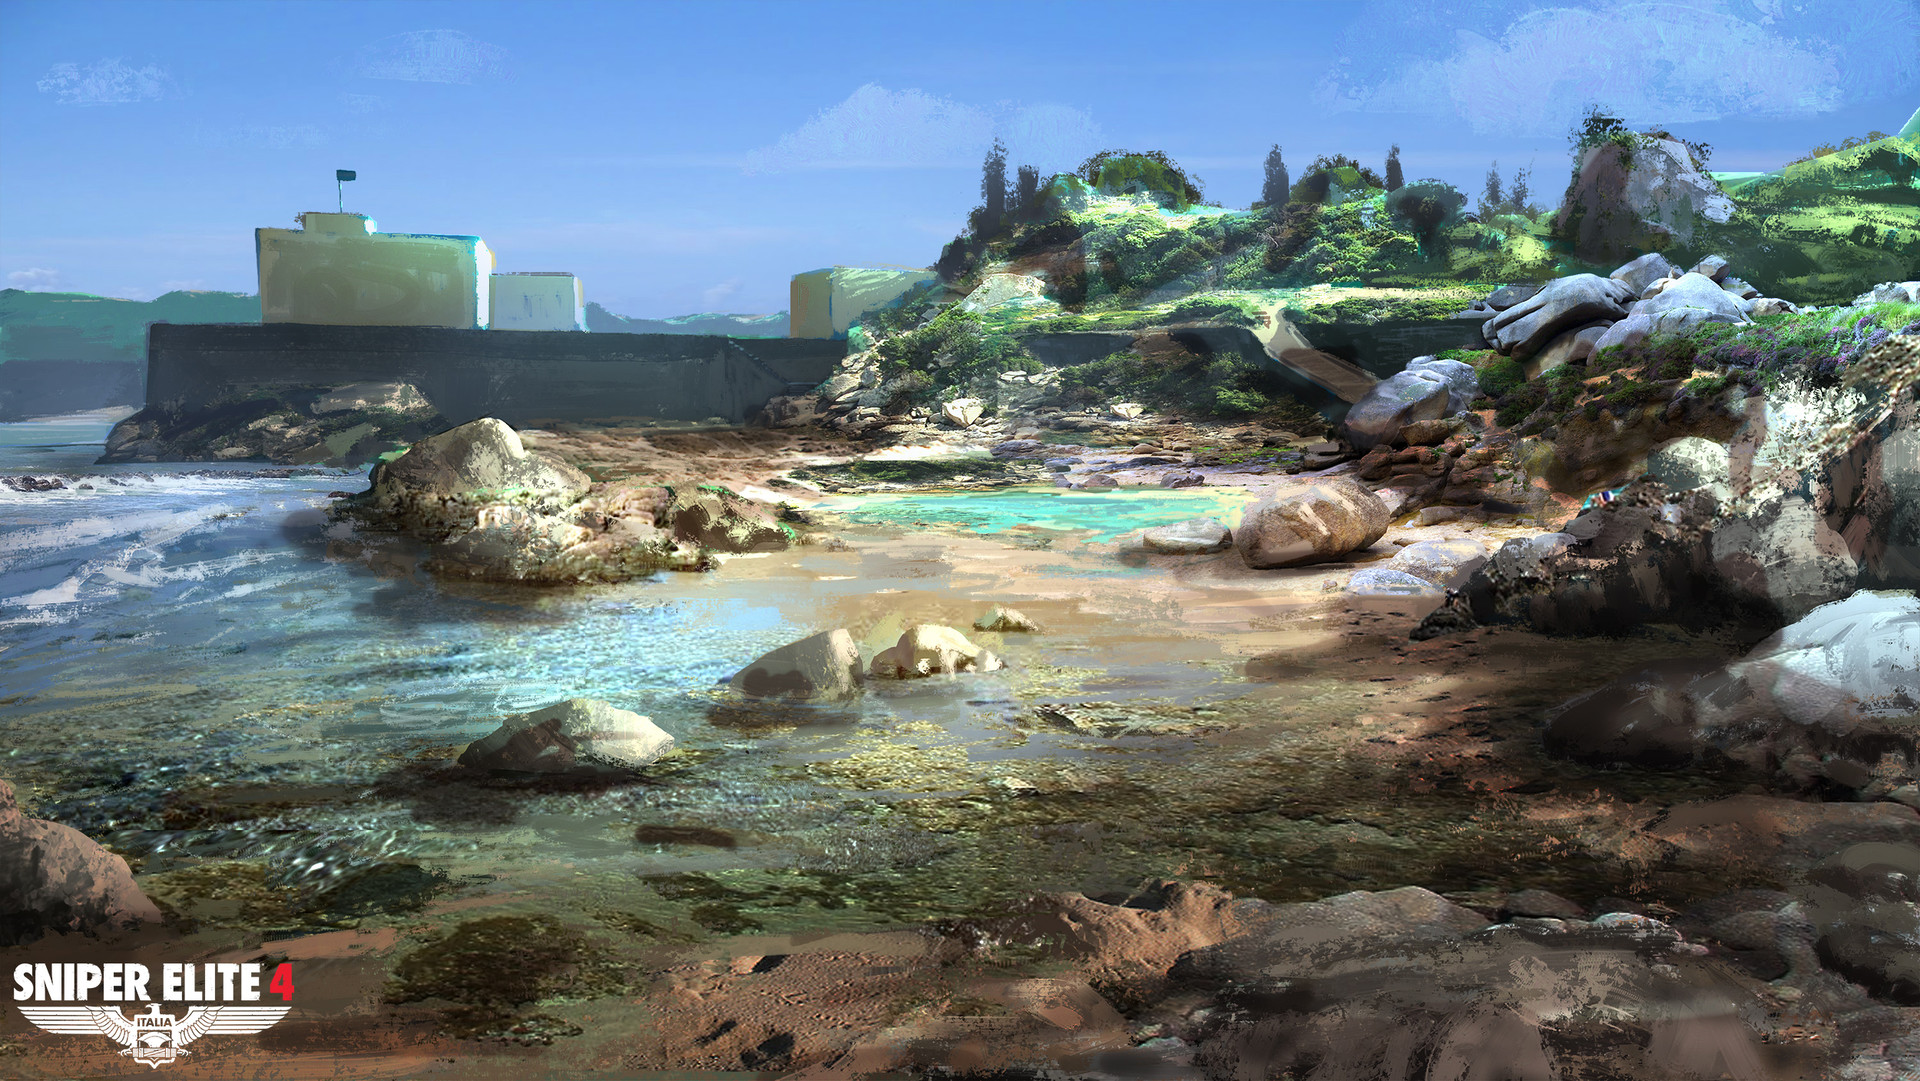 Jack eaves dock concept 02 rockbeach 01day